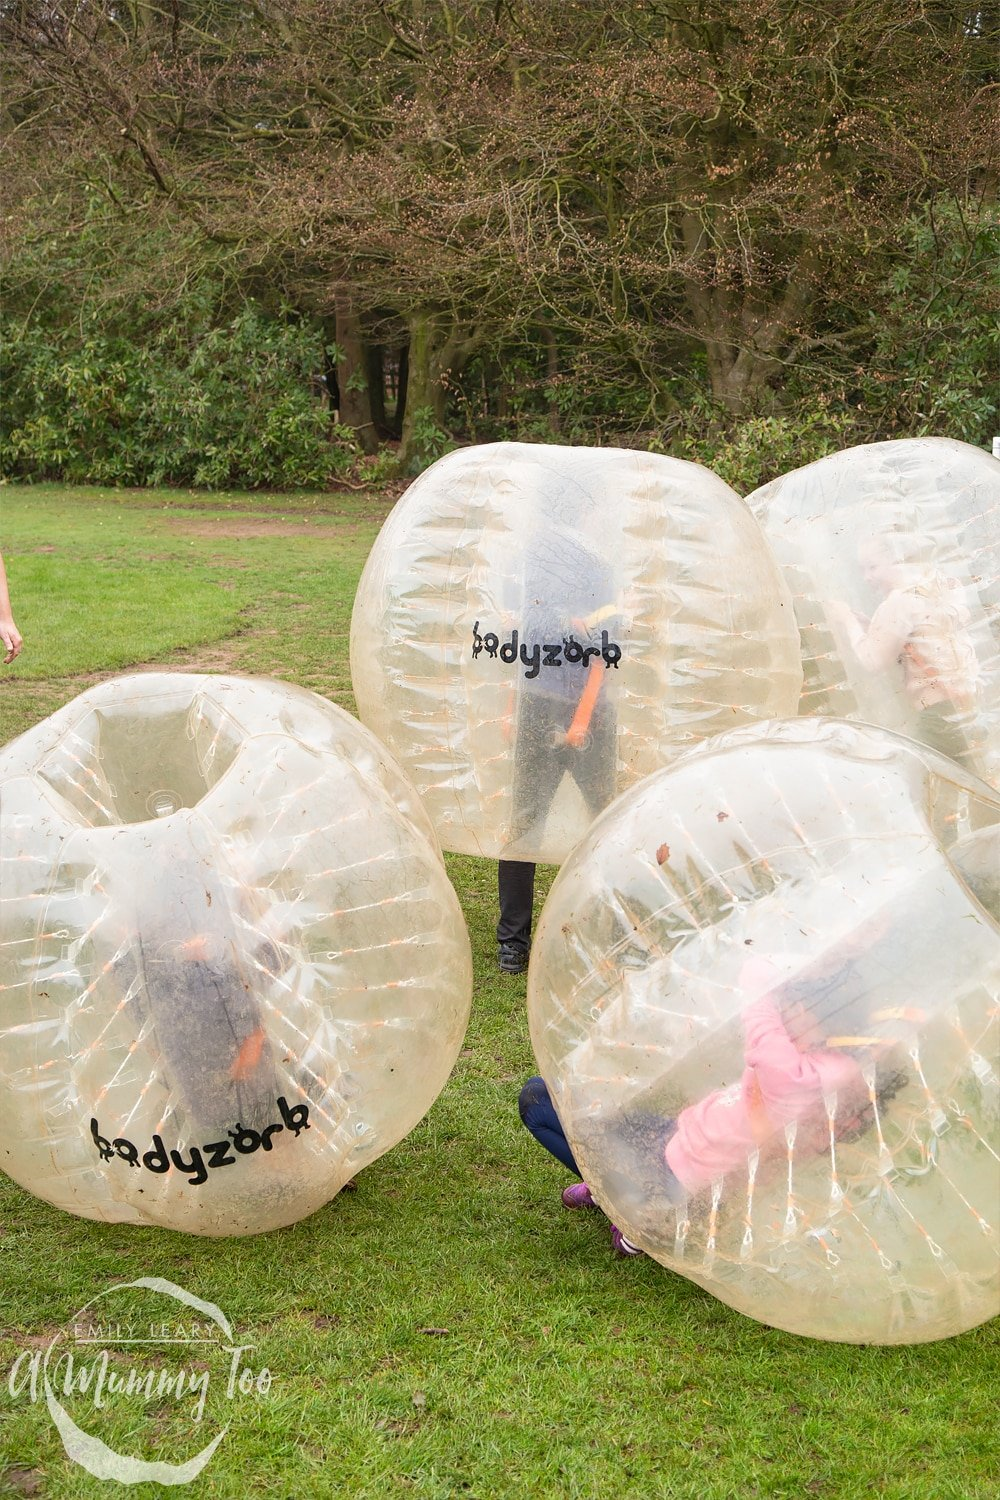 JD and Miss J bodyzorbing.